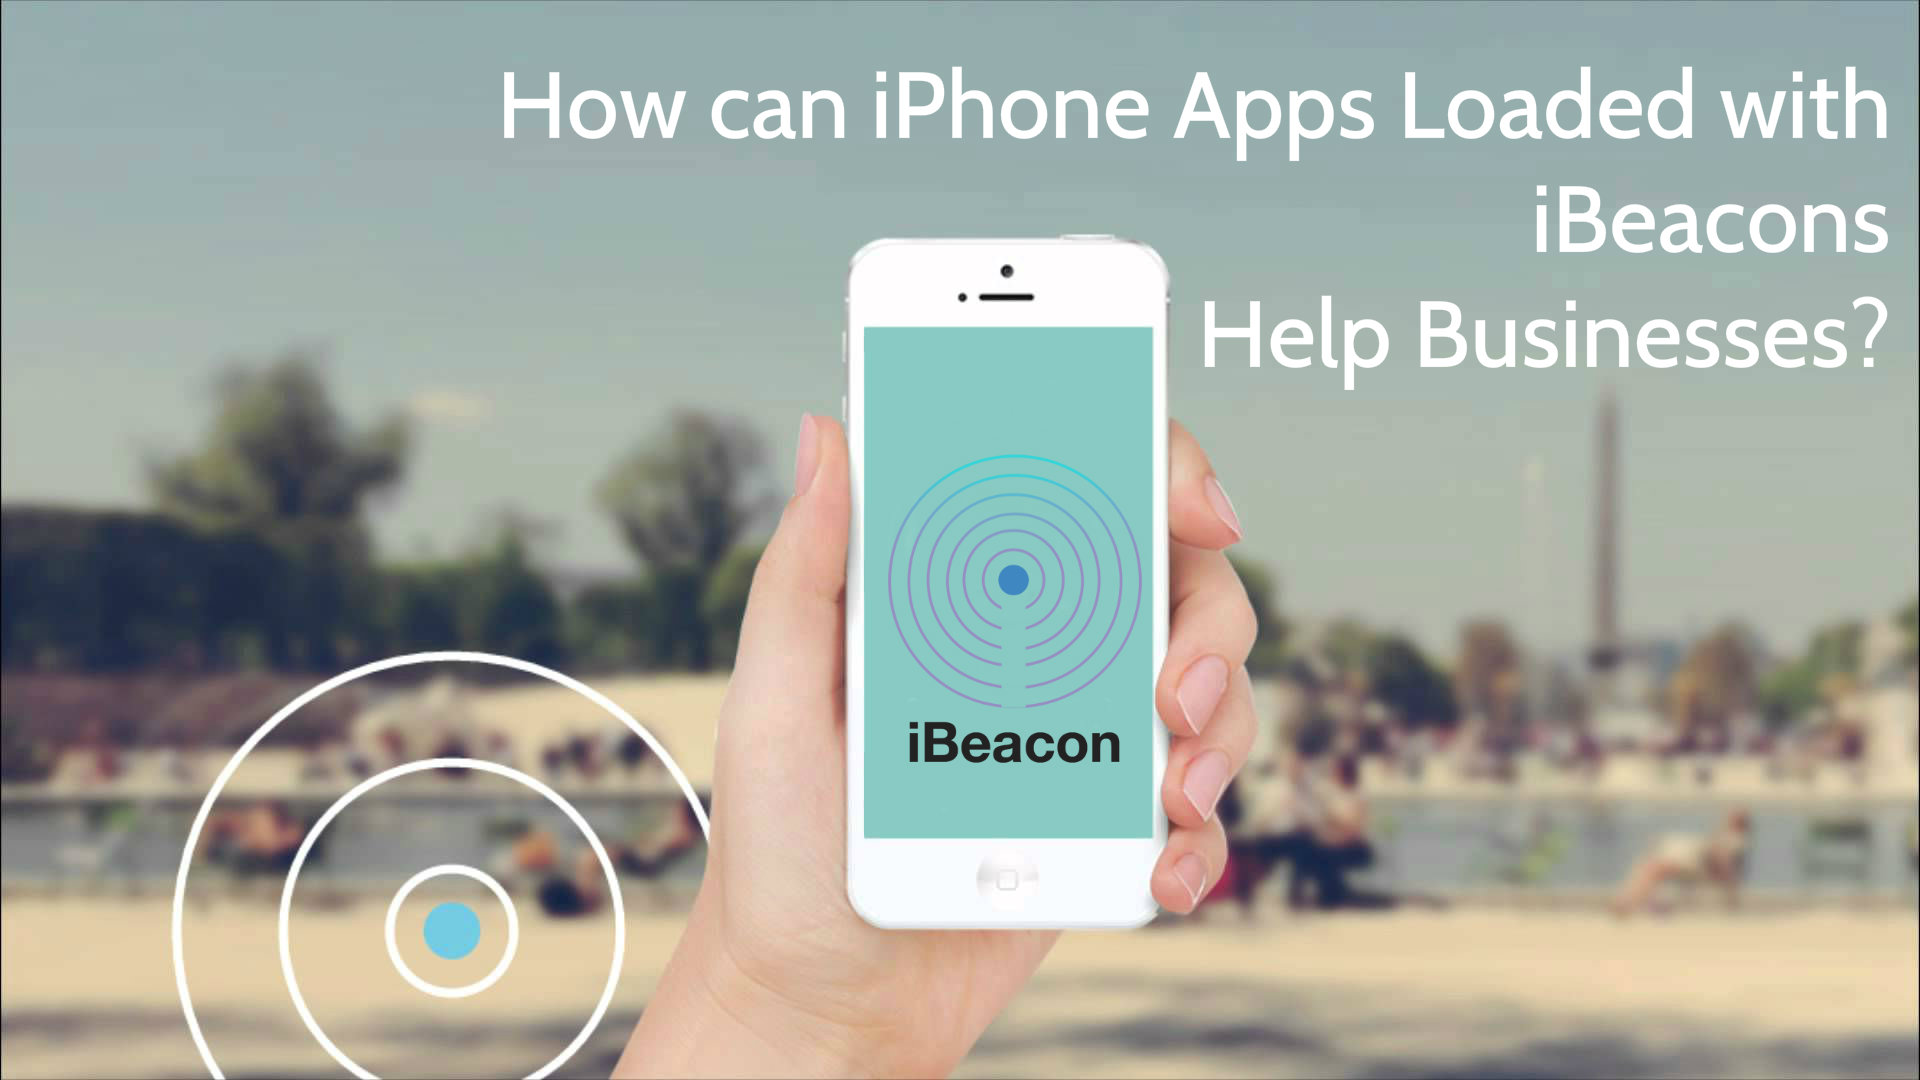 How Can iPhone Apps Loaded with iBeacons Help Businesses?